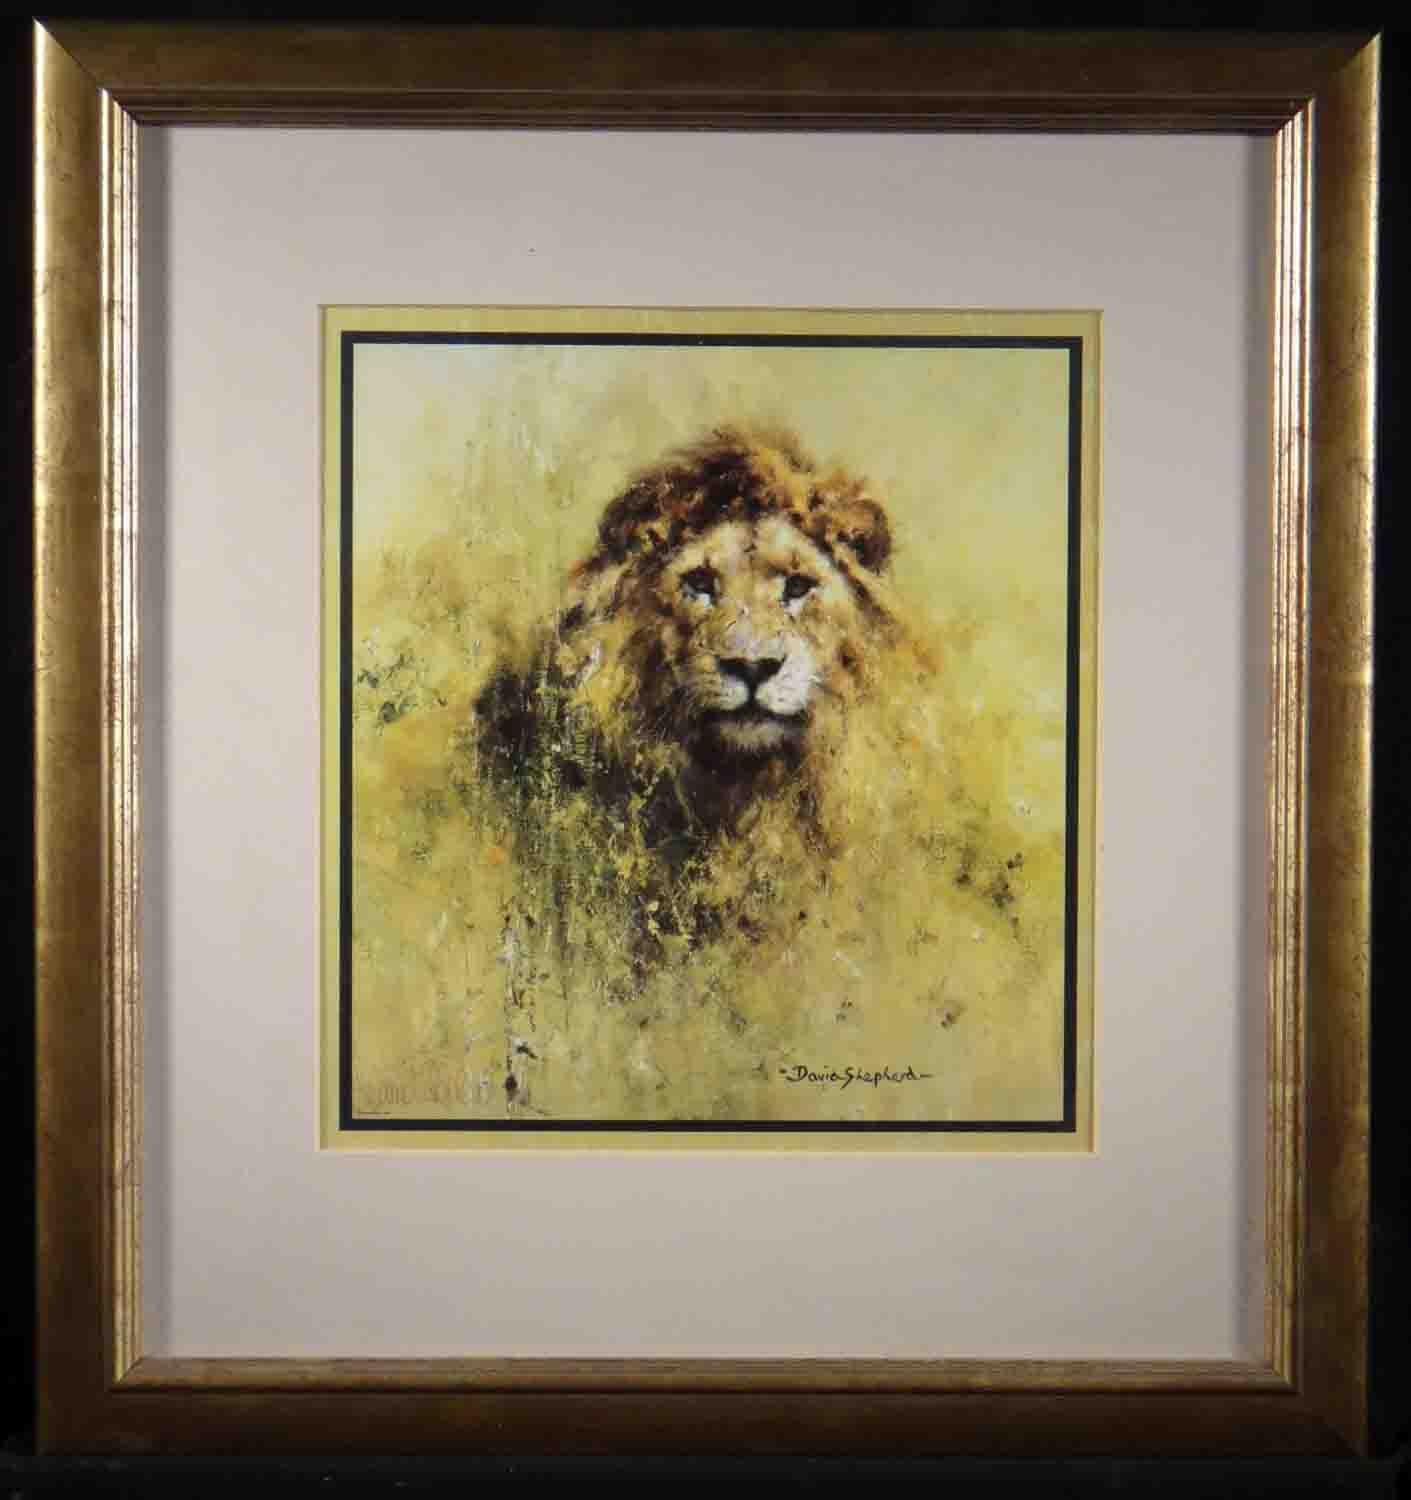 david shepherd, lion, signed, framed print